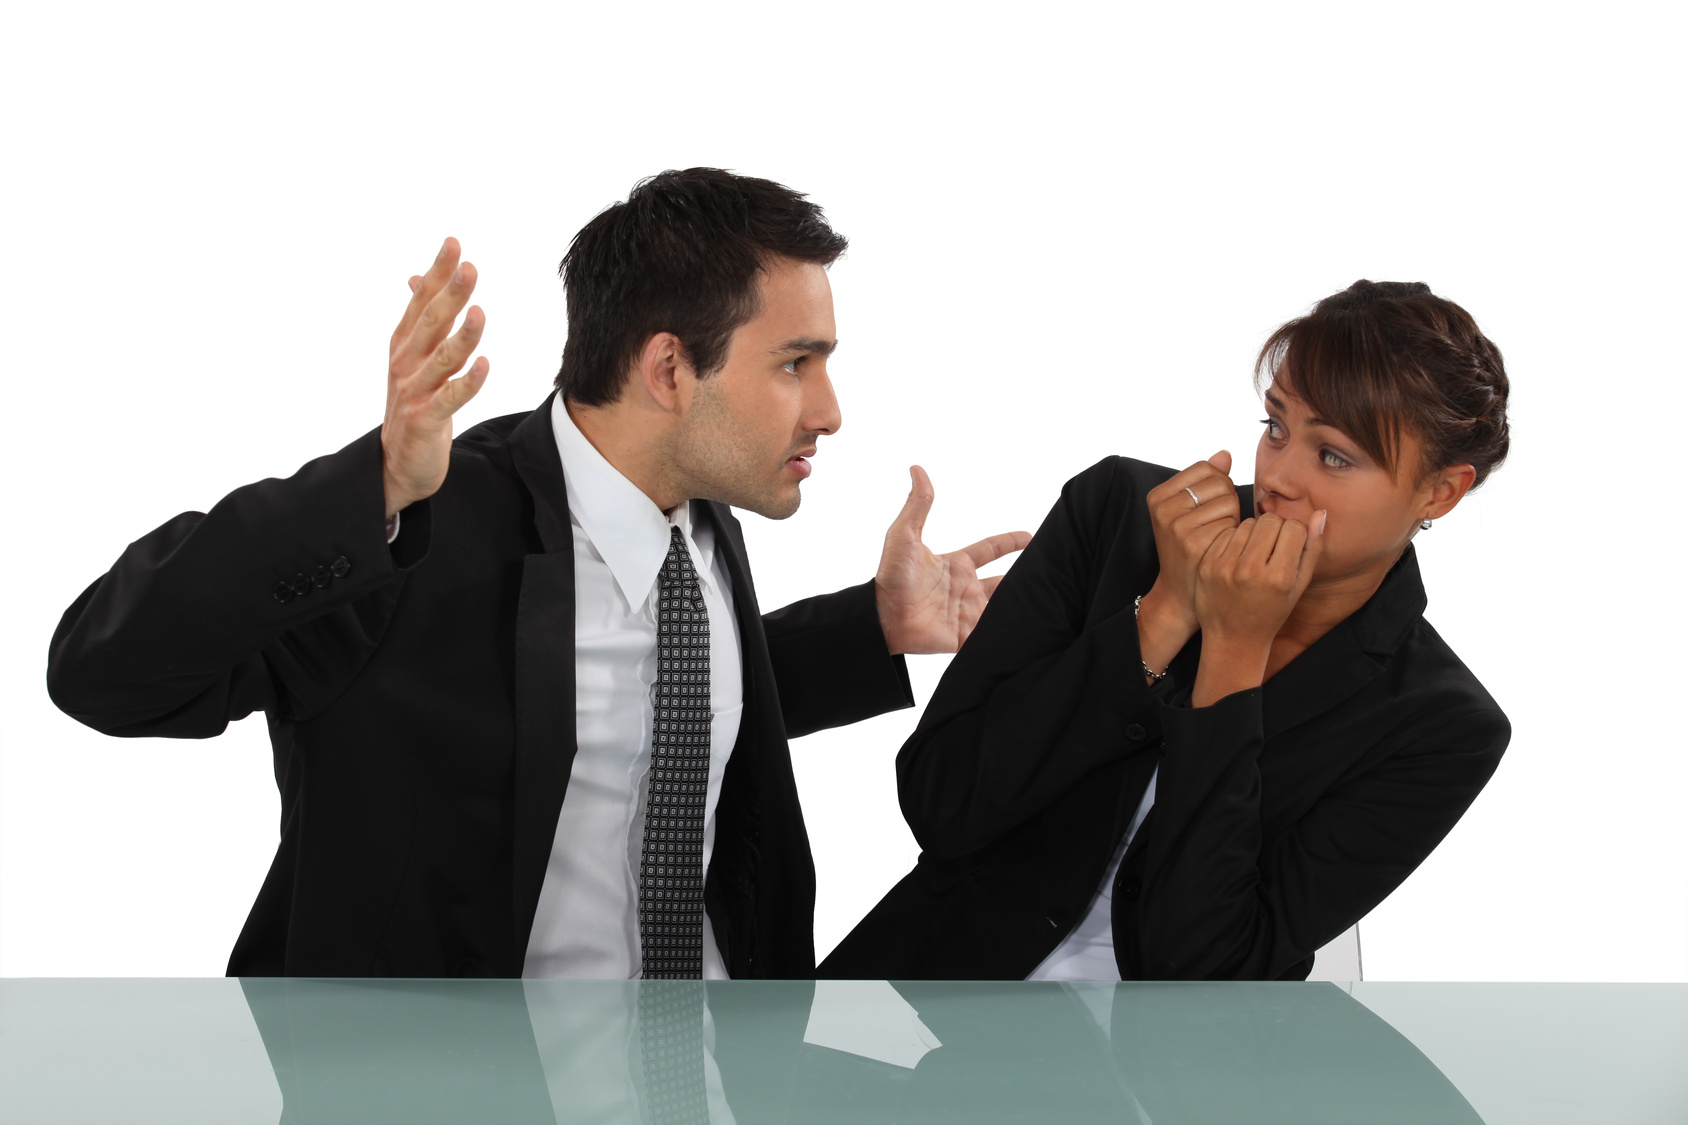 Retaliation Lawsuit Scenario: A menacing employee intimidates a colleague